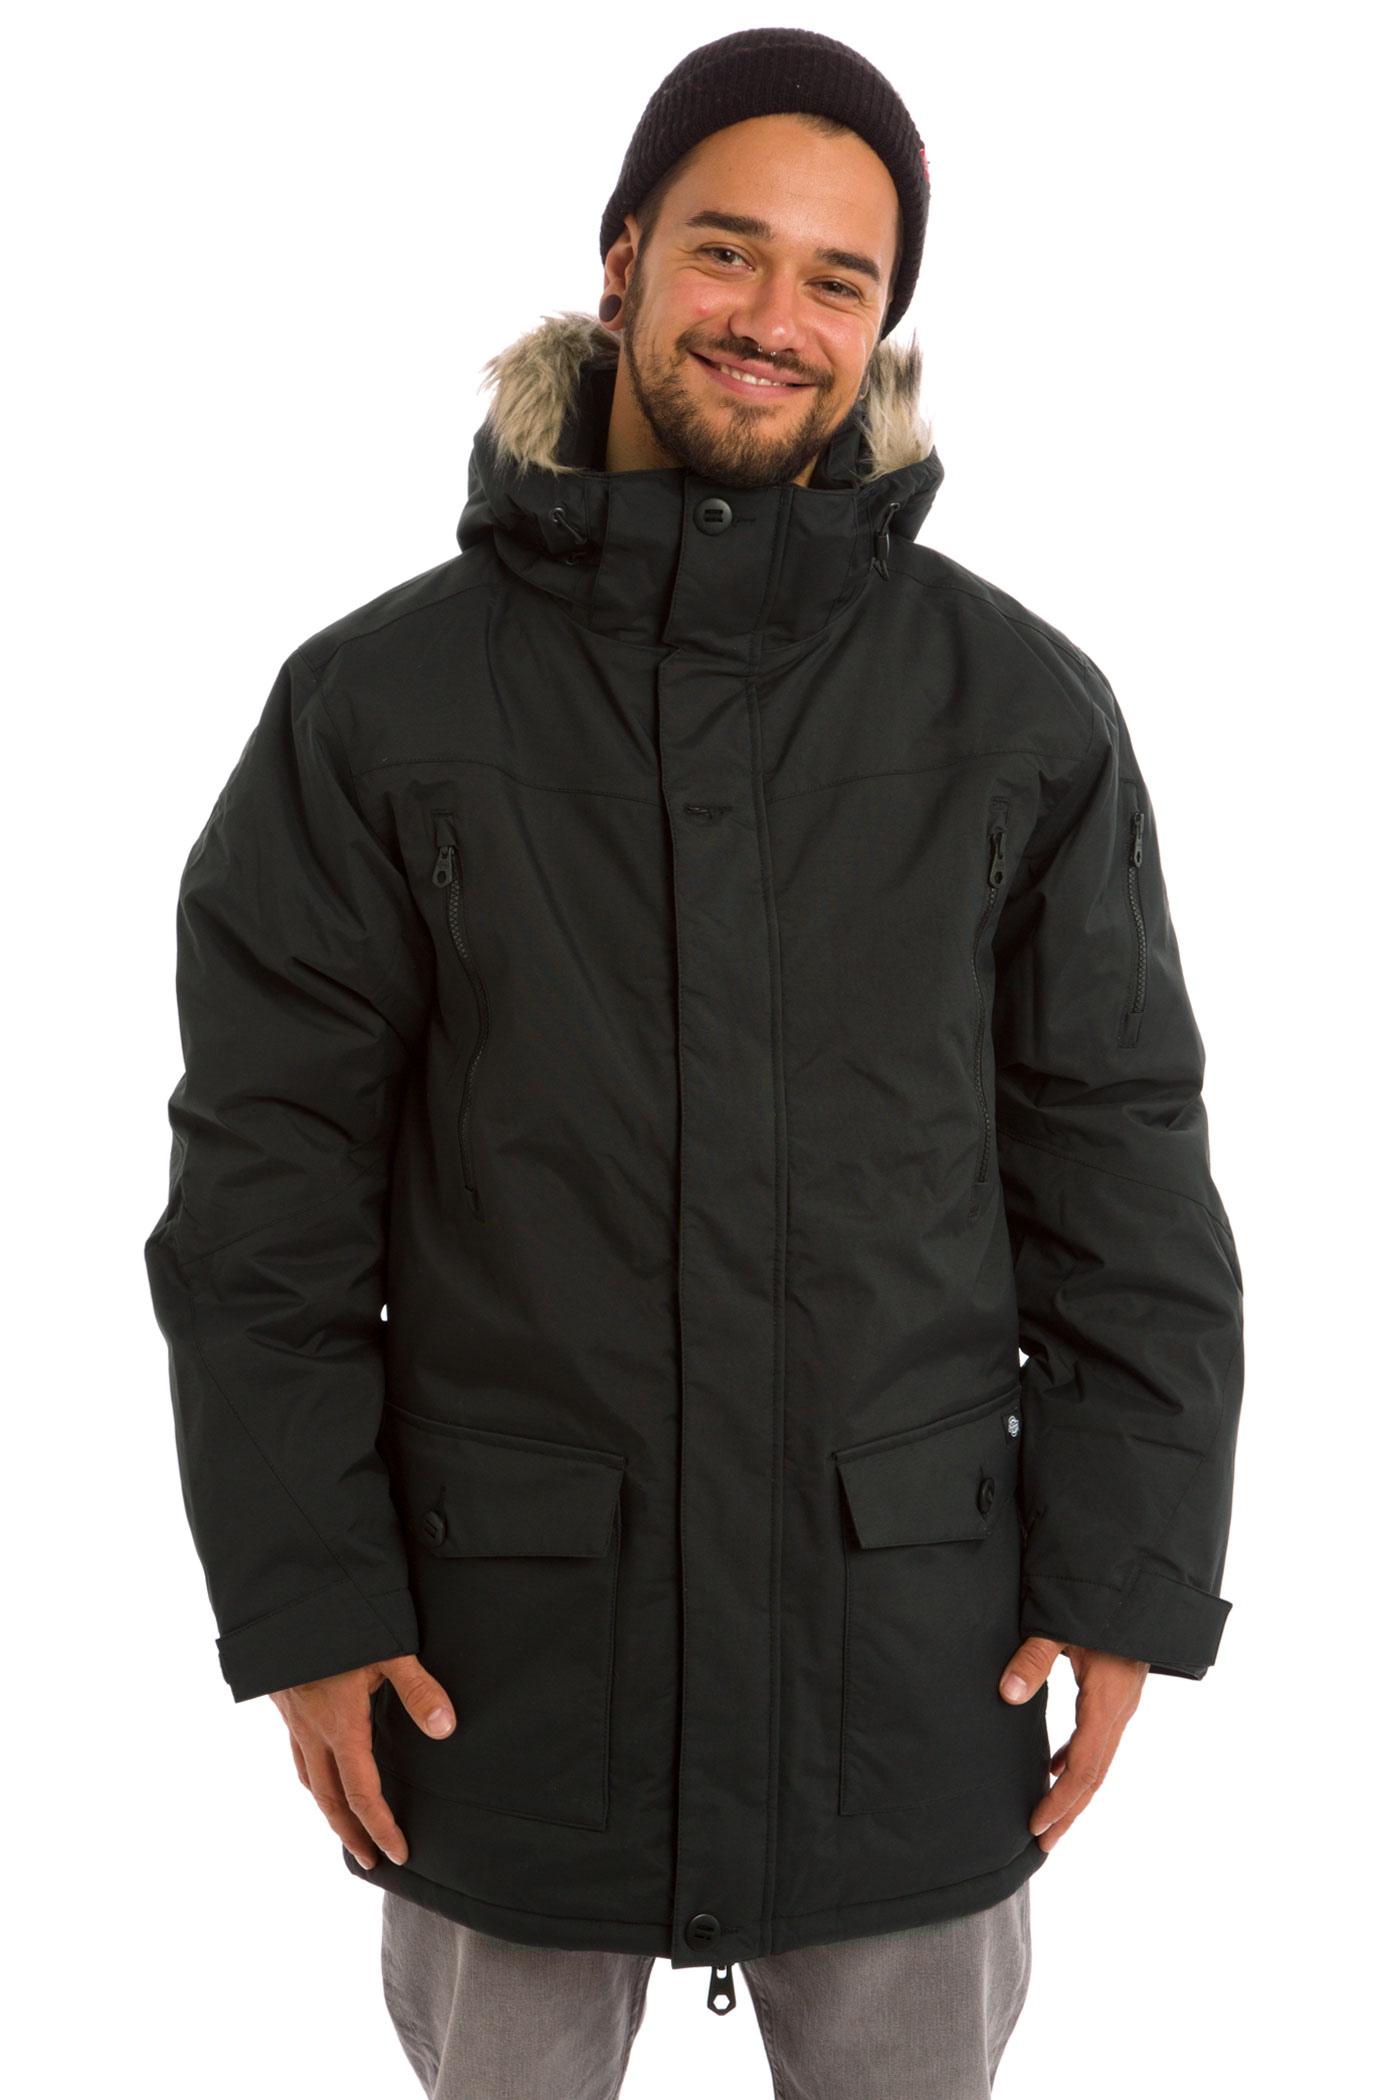 Dickies glen haven jacke black kaufen bei skatedeluxe for Glen haven